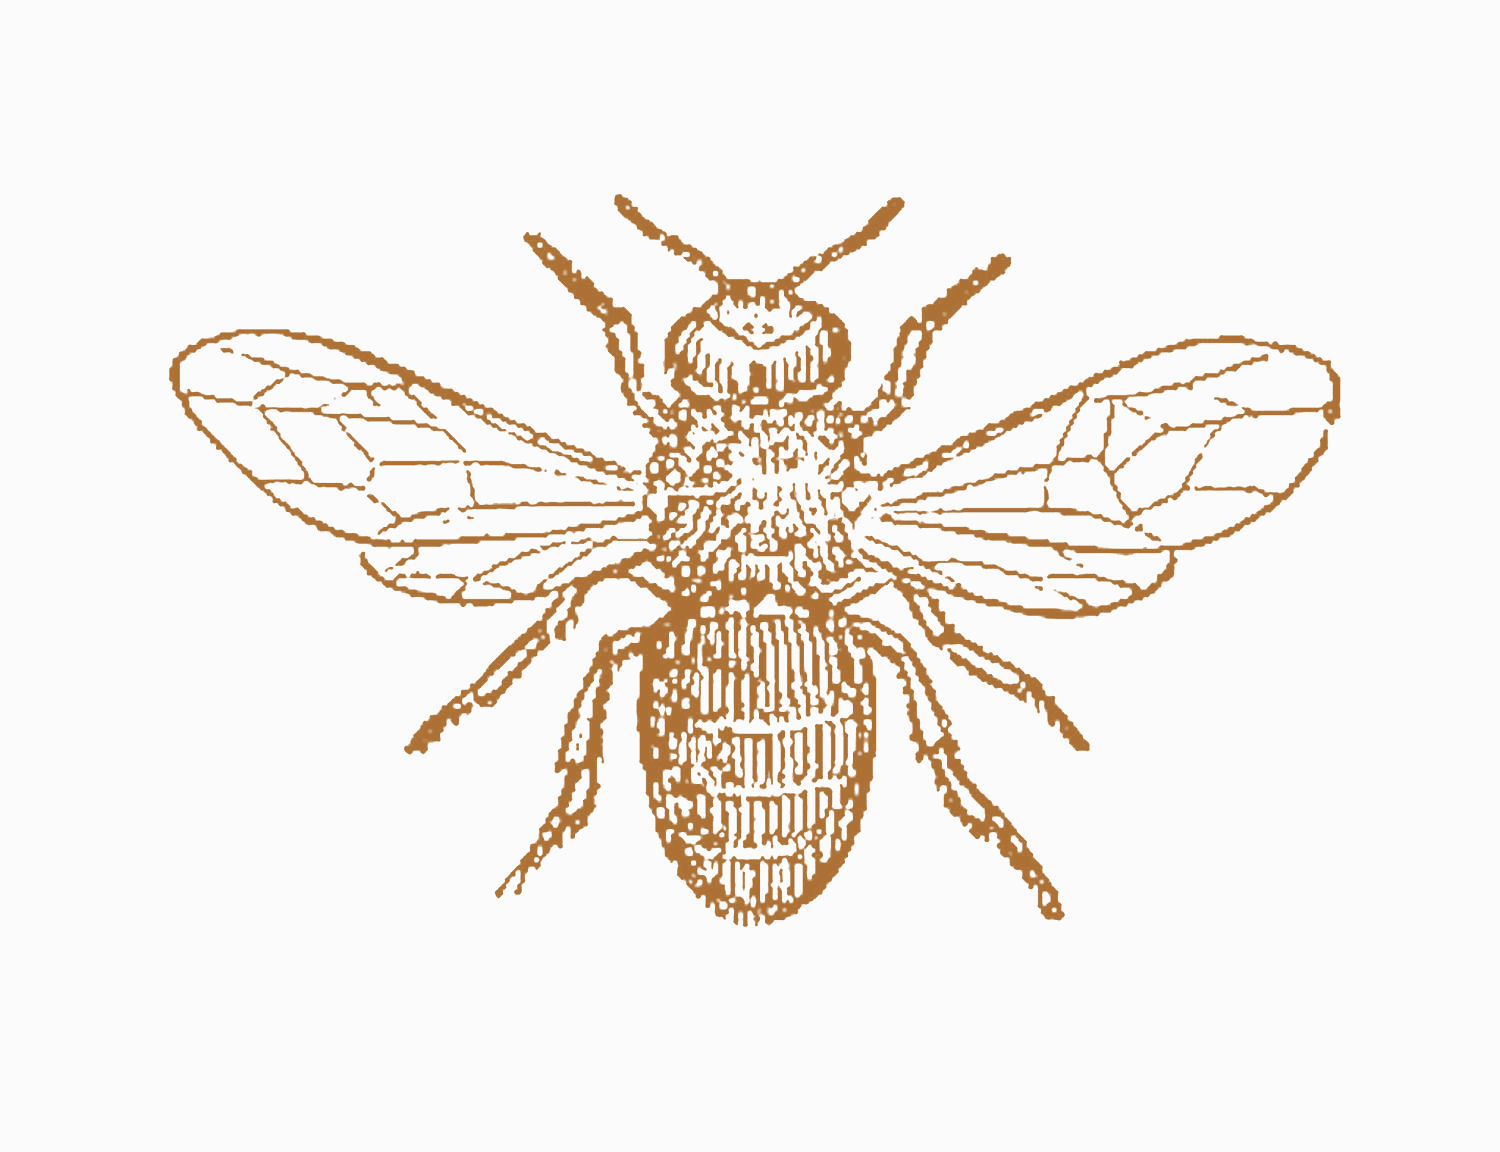 Antique Images: Insect Clip Art: Black and White ...